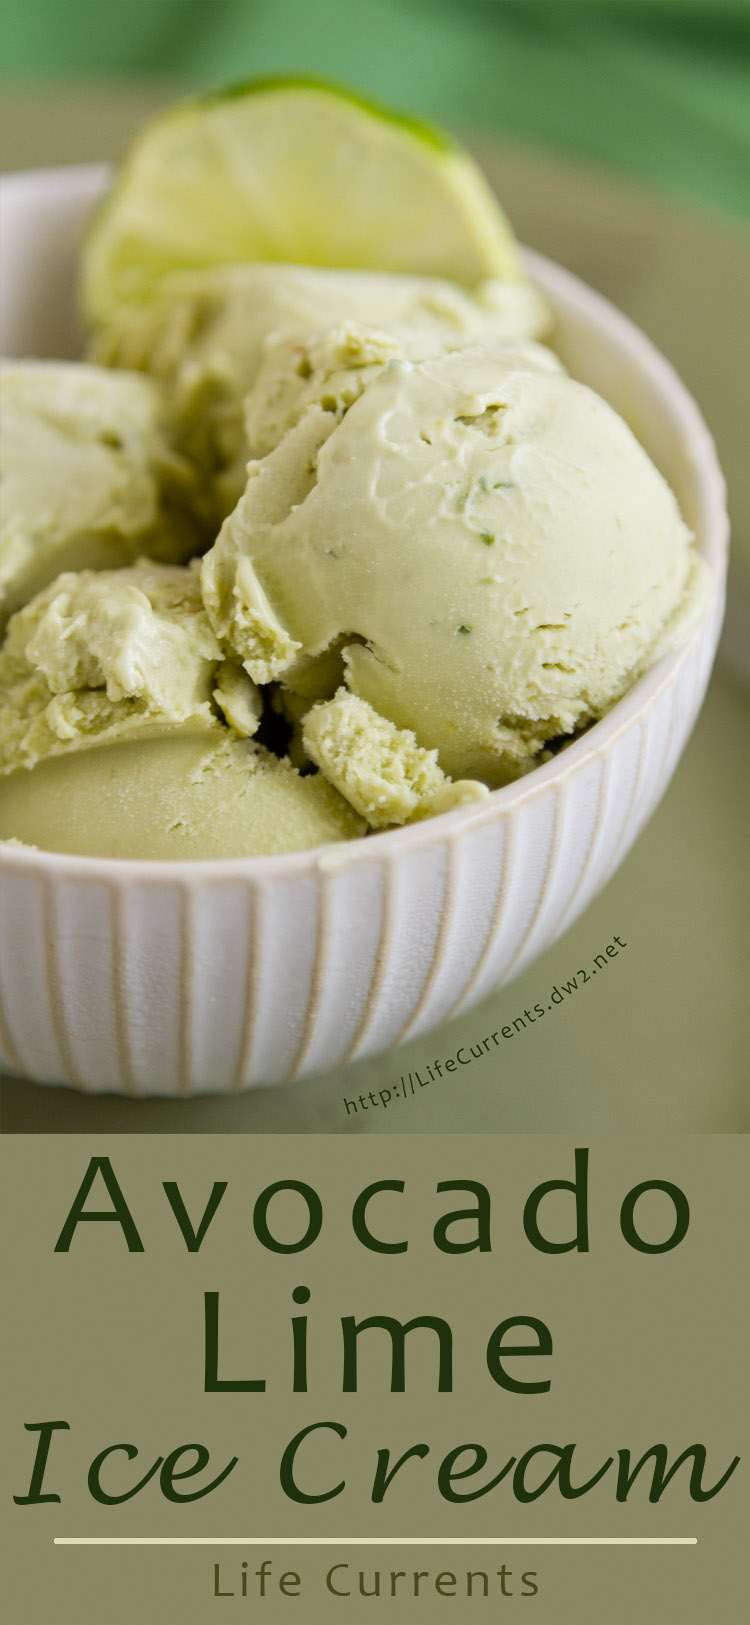 Avocado Lime Ice Cream - Life Currents